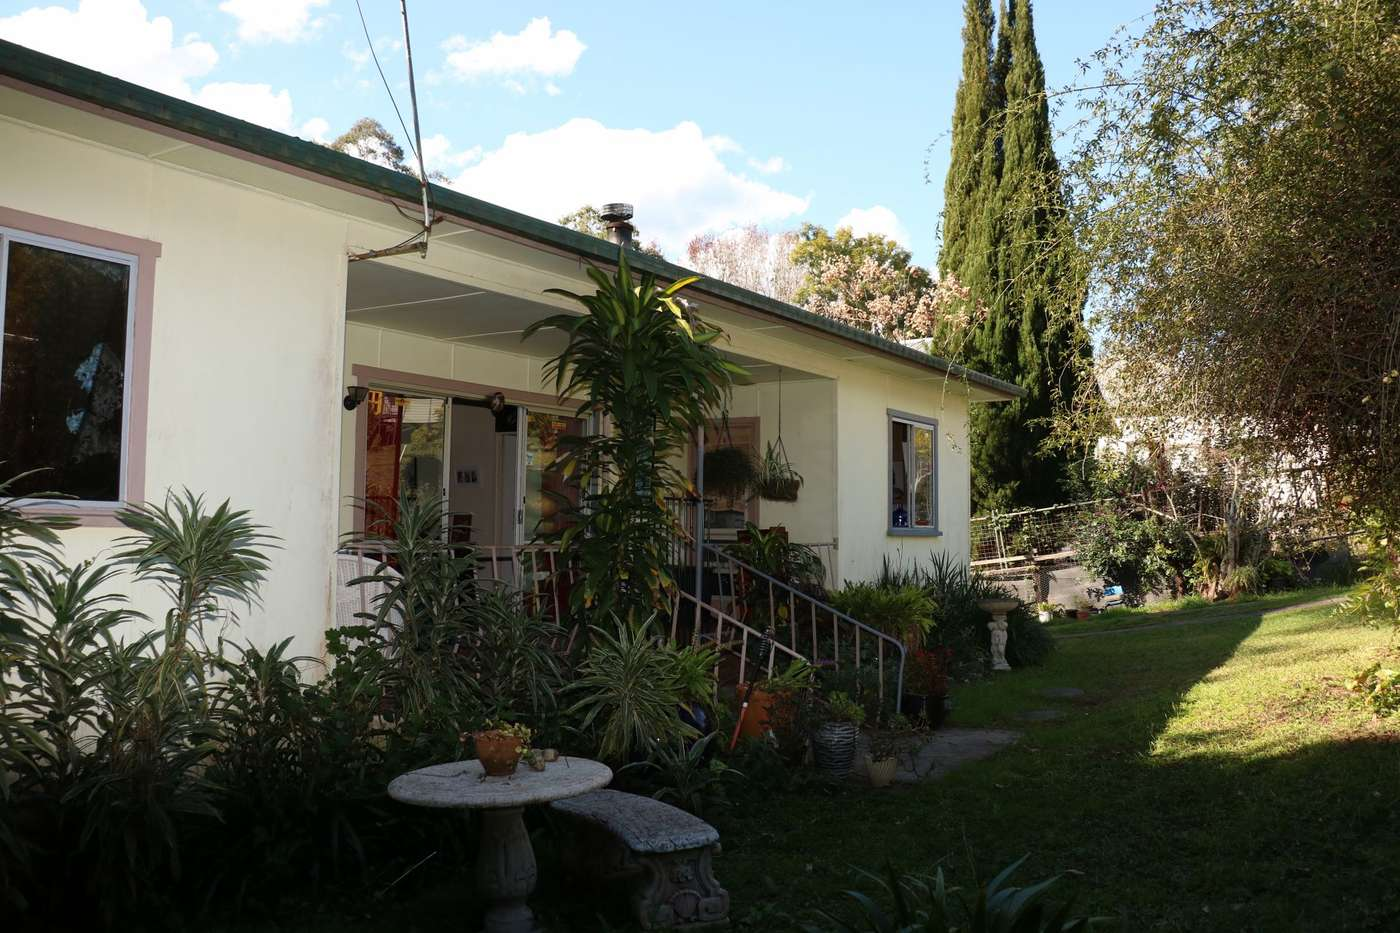 Main view of Homely house listing, 24 Thorburn Street, Nimbin, NSW 2480